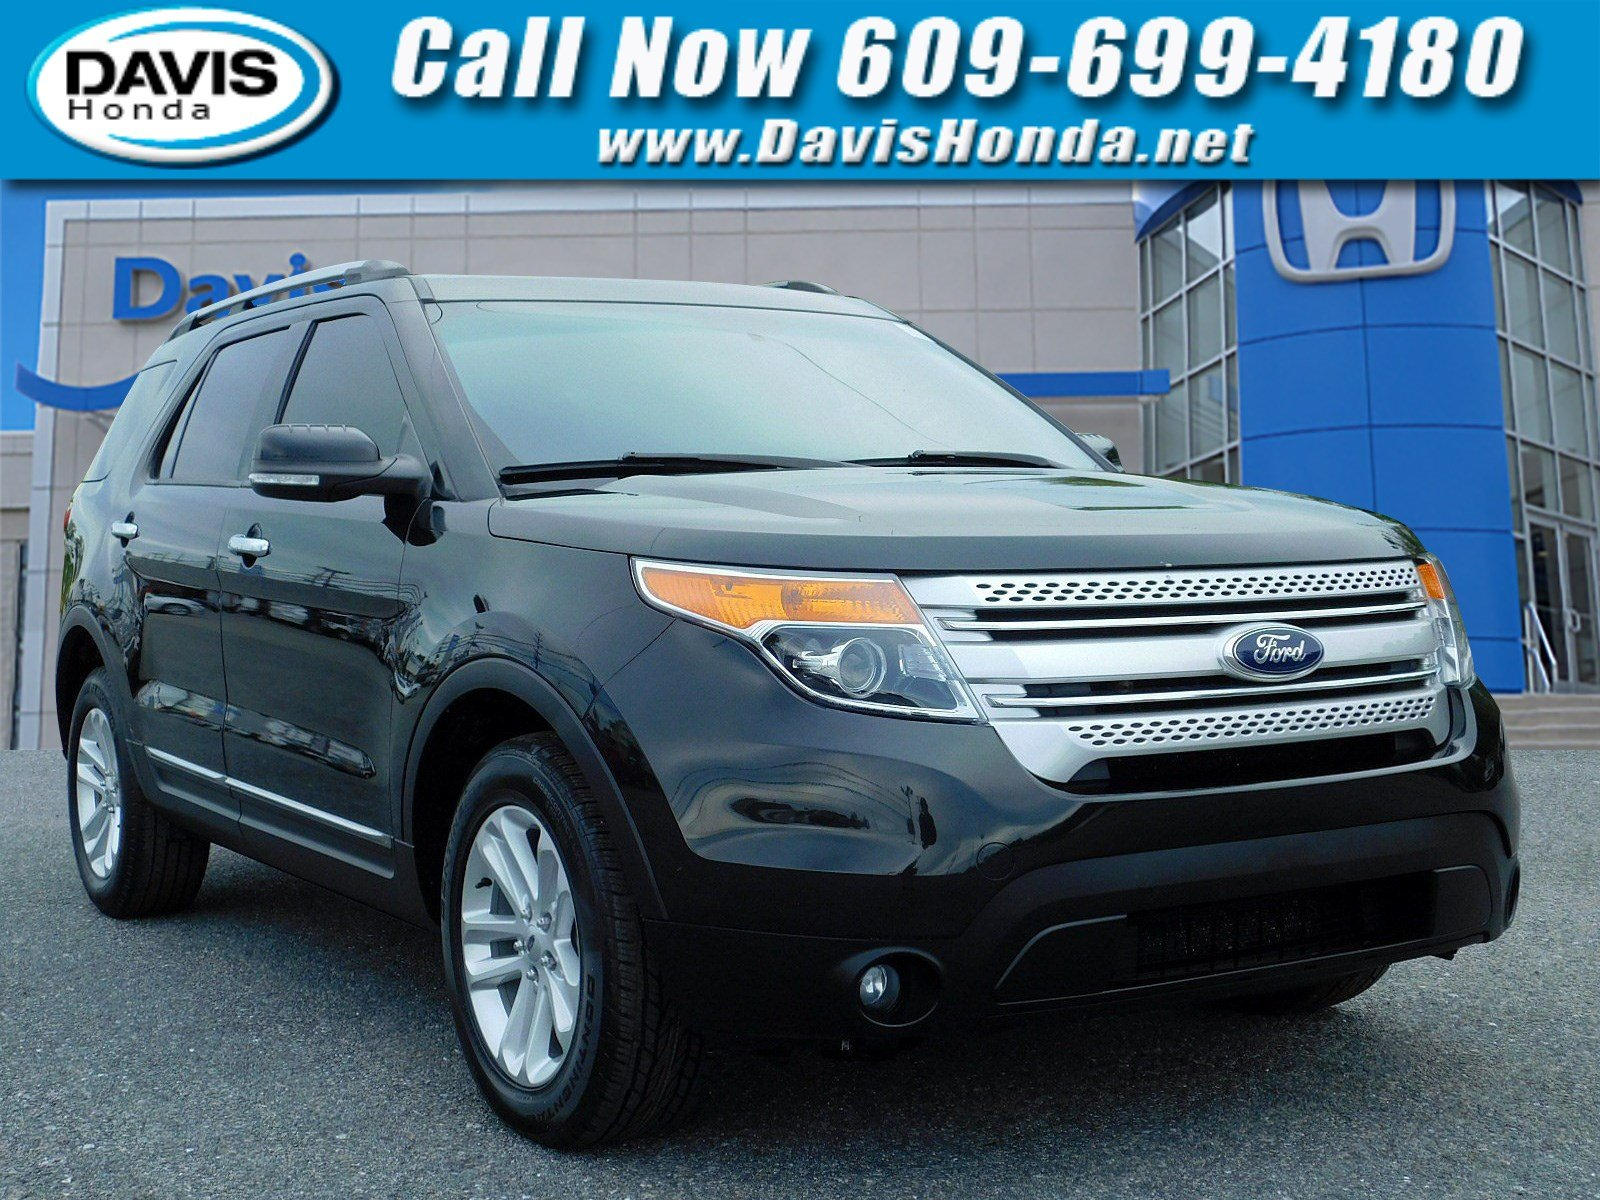 Captivating 2015 Ford Explorer XLT SUV